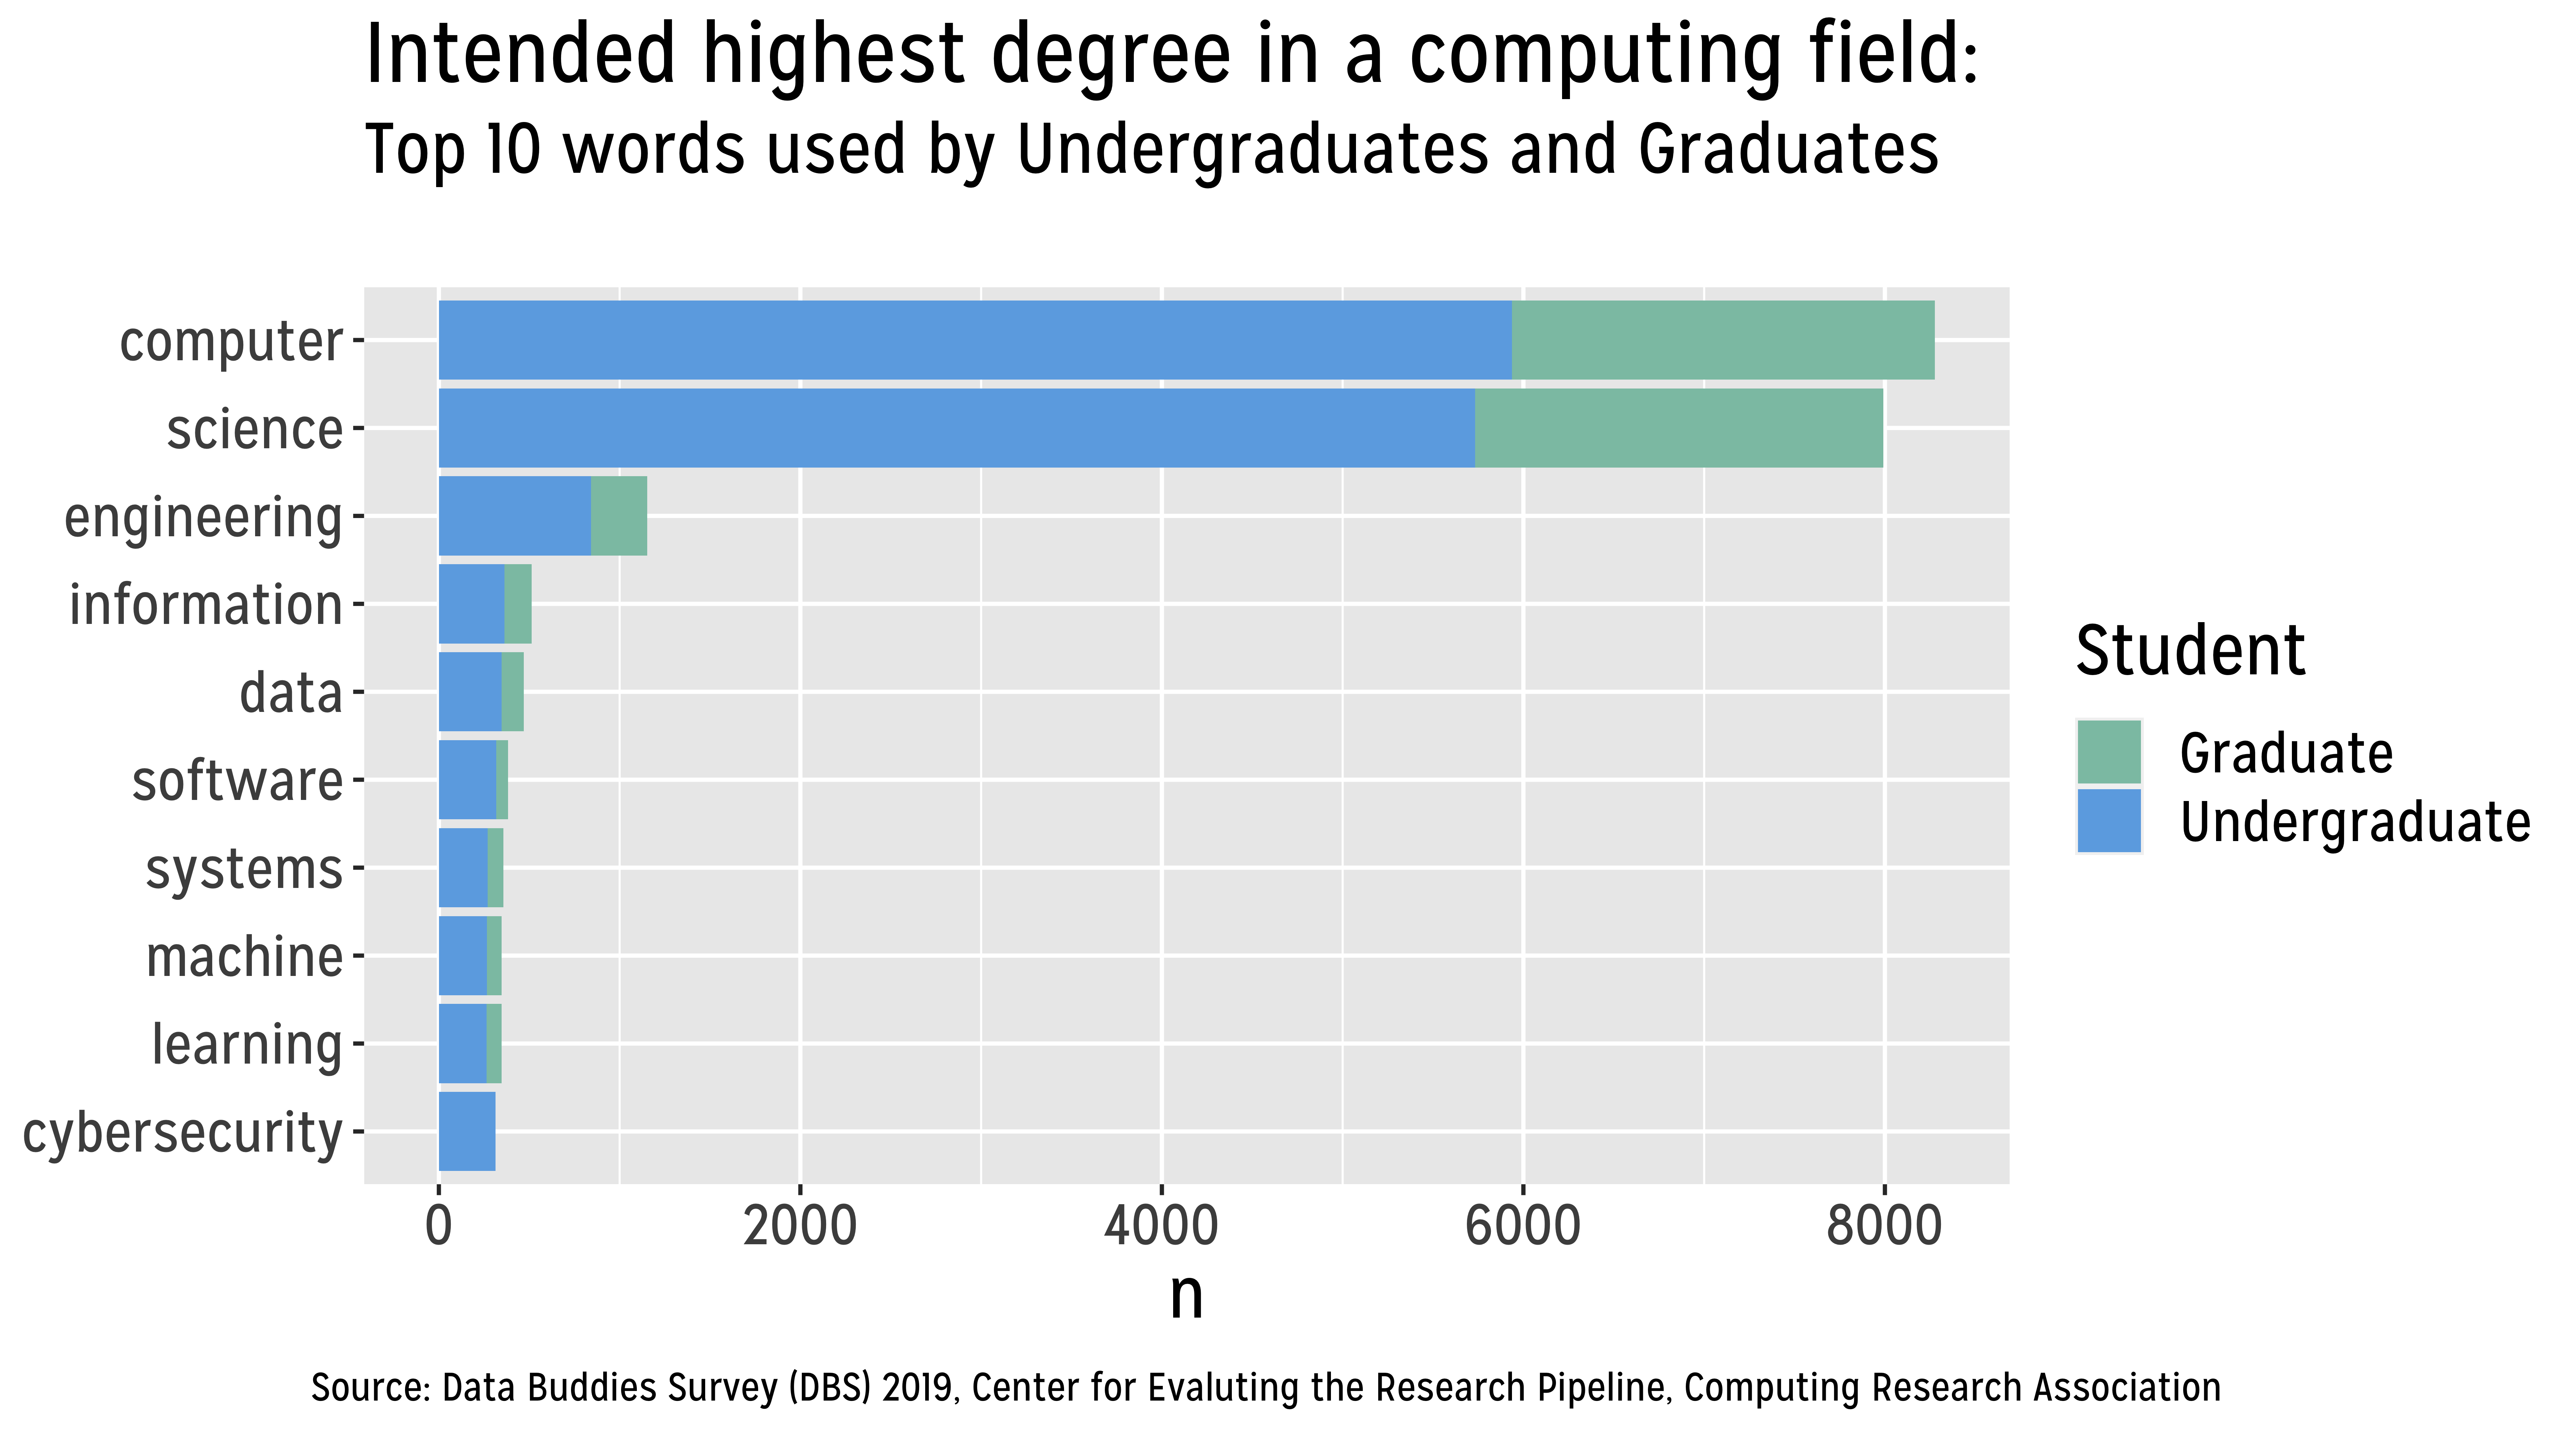 Top 10 most frequently used words to describe computing fields in which students plan to earn their highest degree.